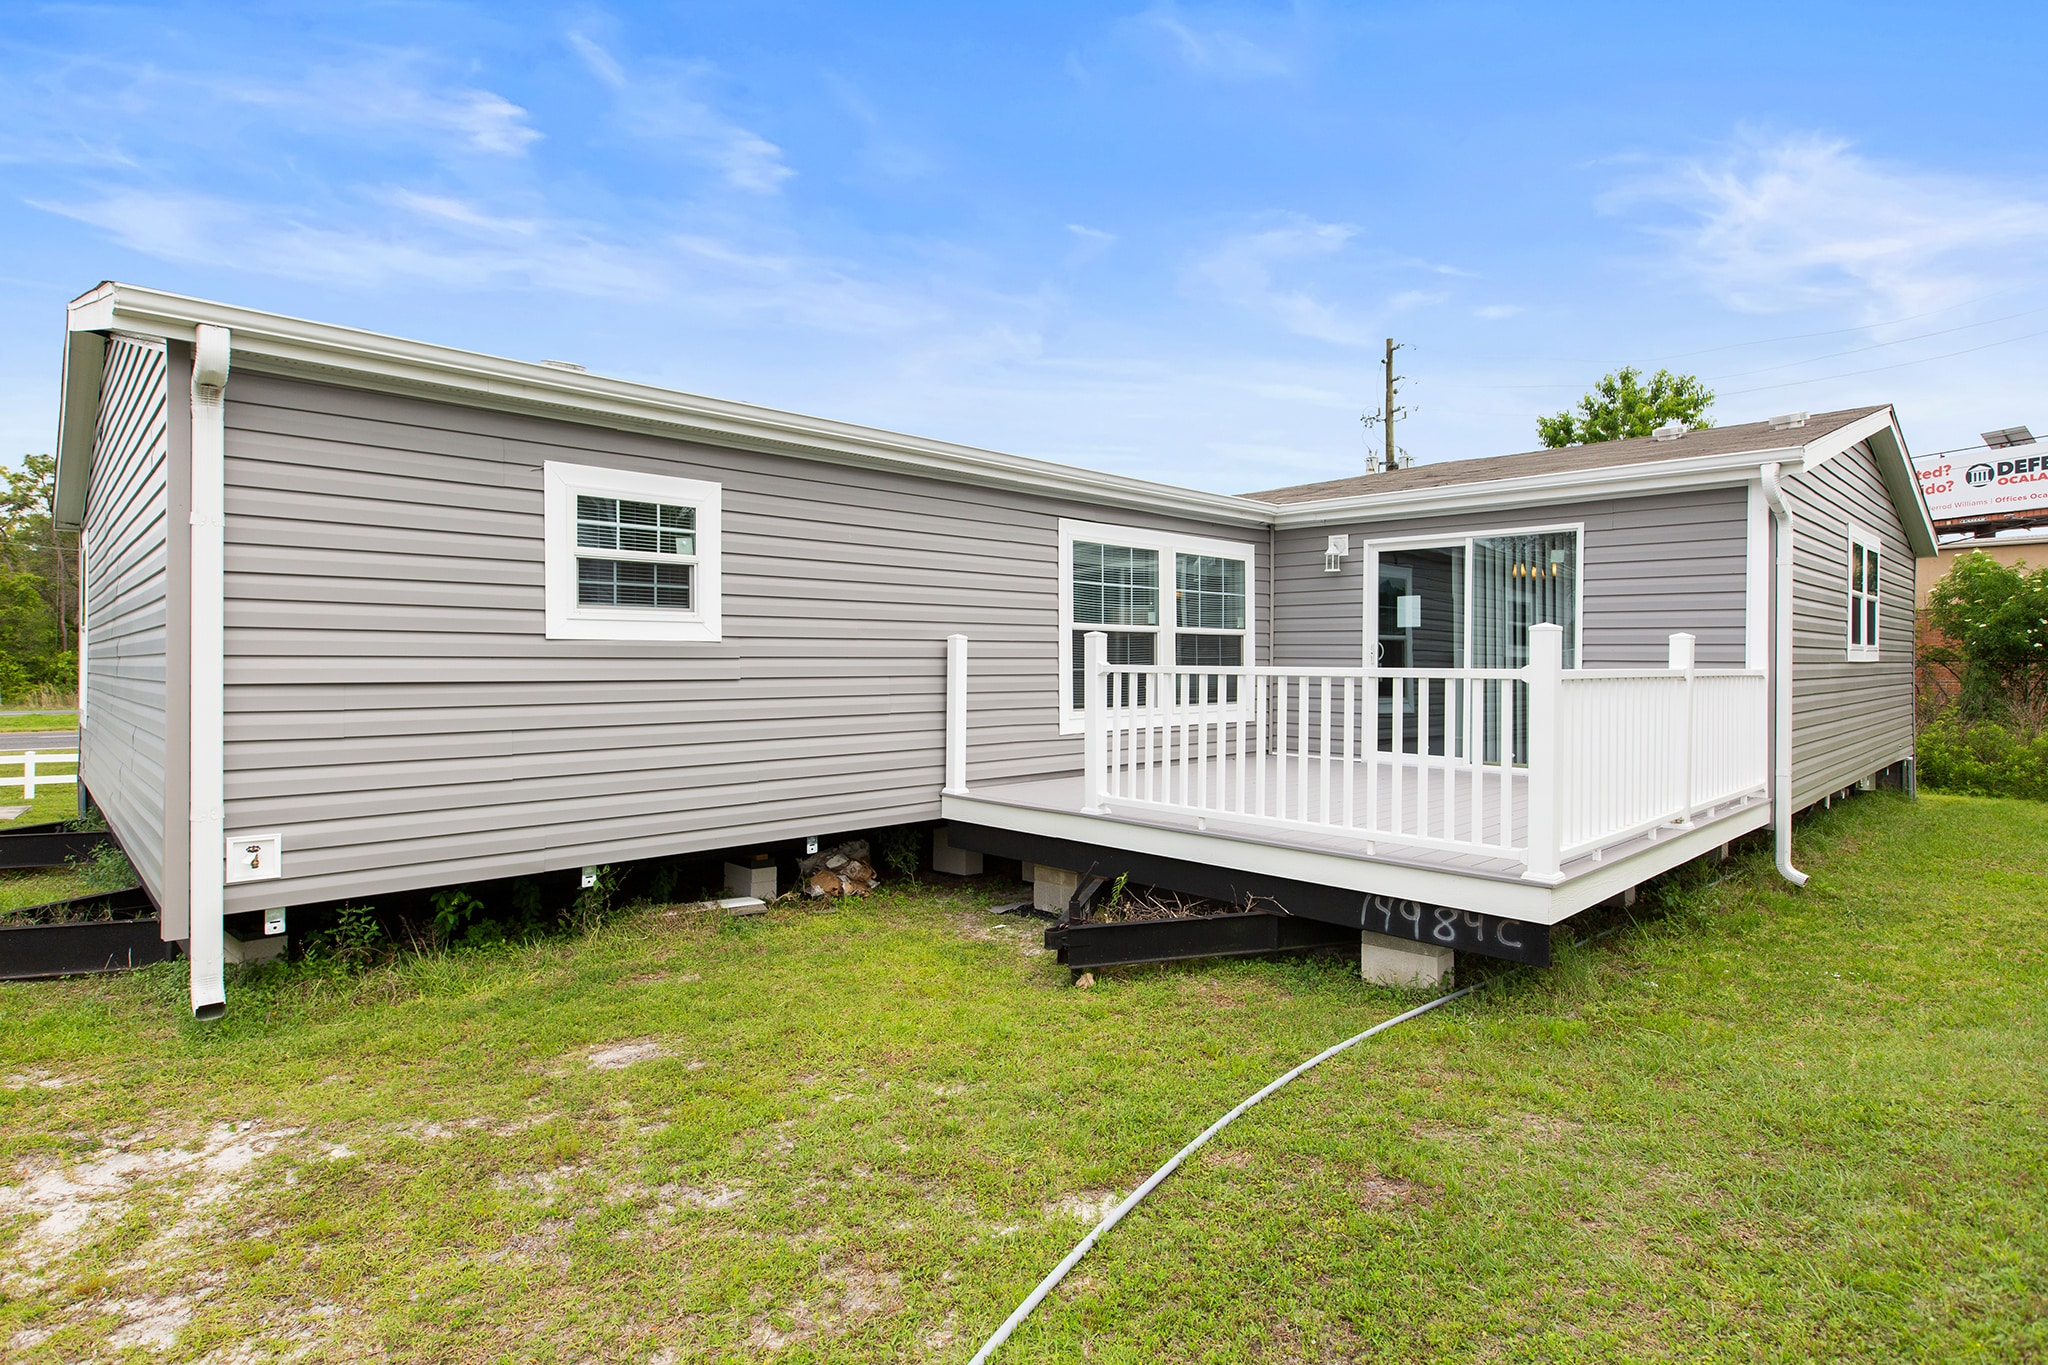 Manufactured Home Sizes: What's the Difference?